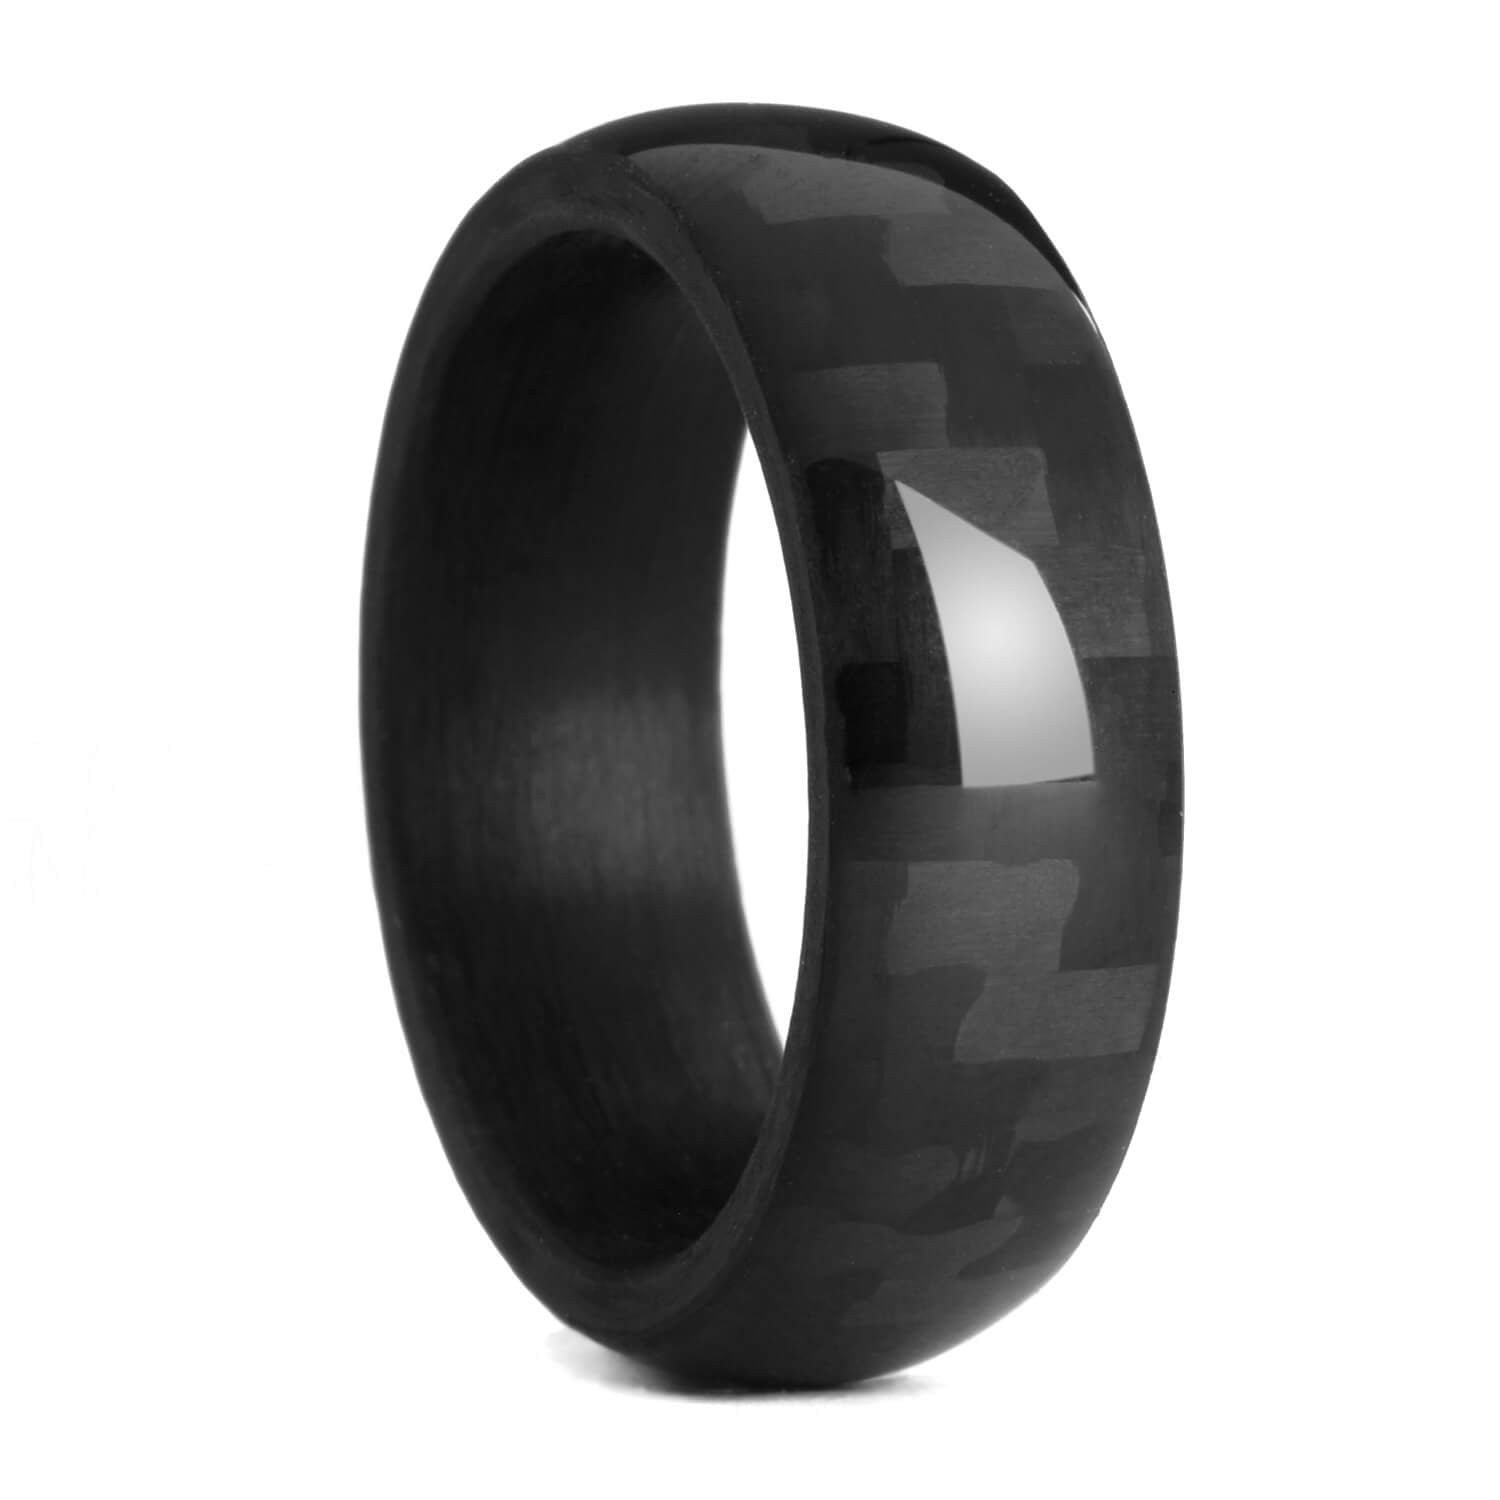 rings band beveled s black inlay dsc wedding mens products fiber carbon ring copy of titanium men